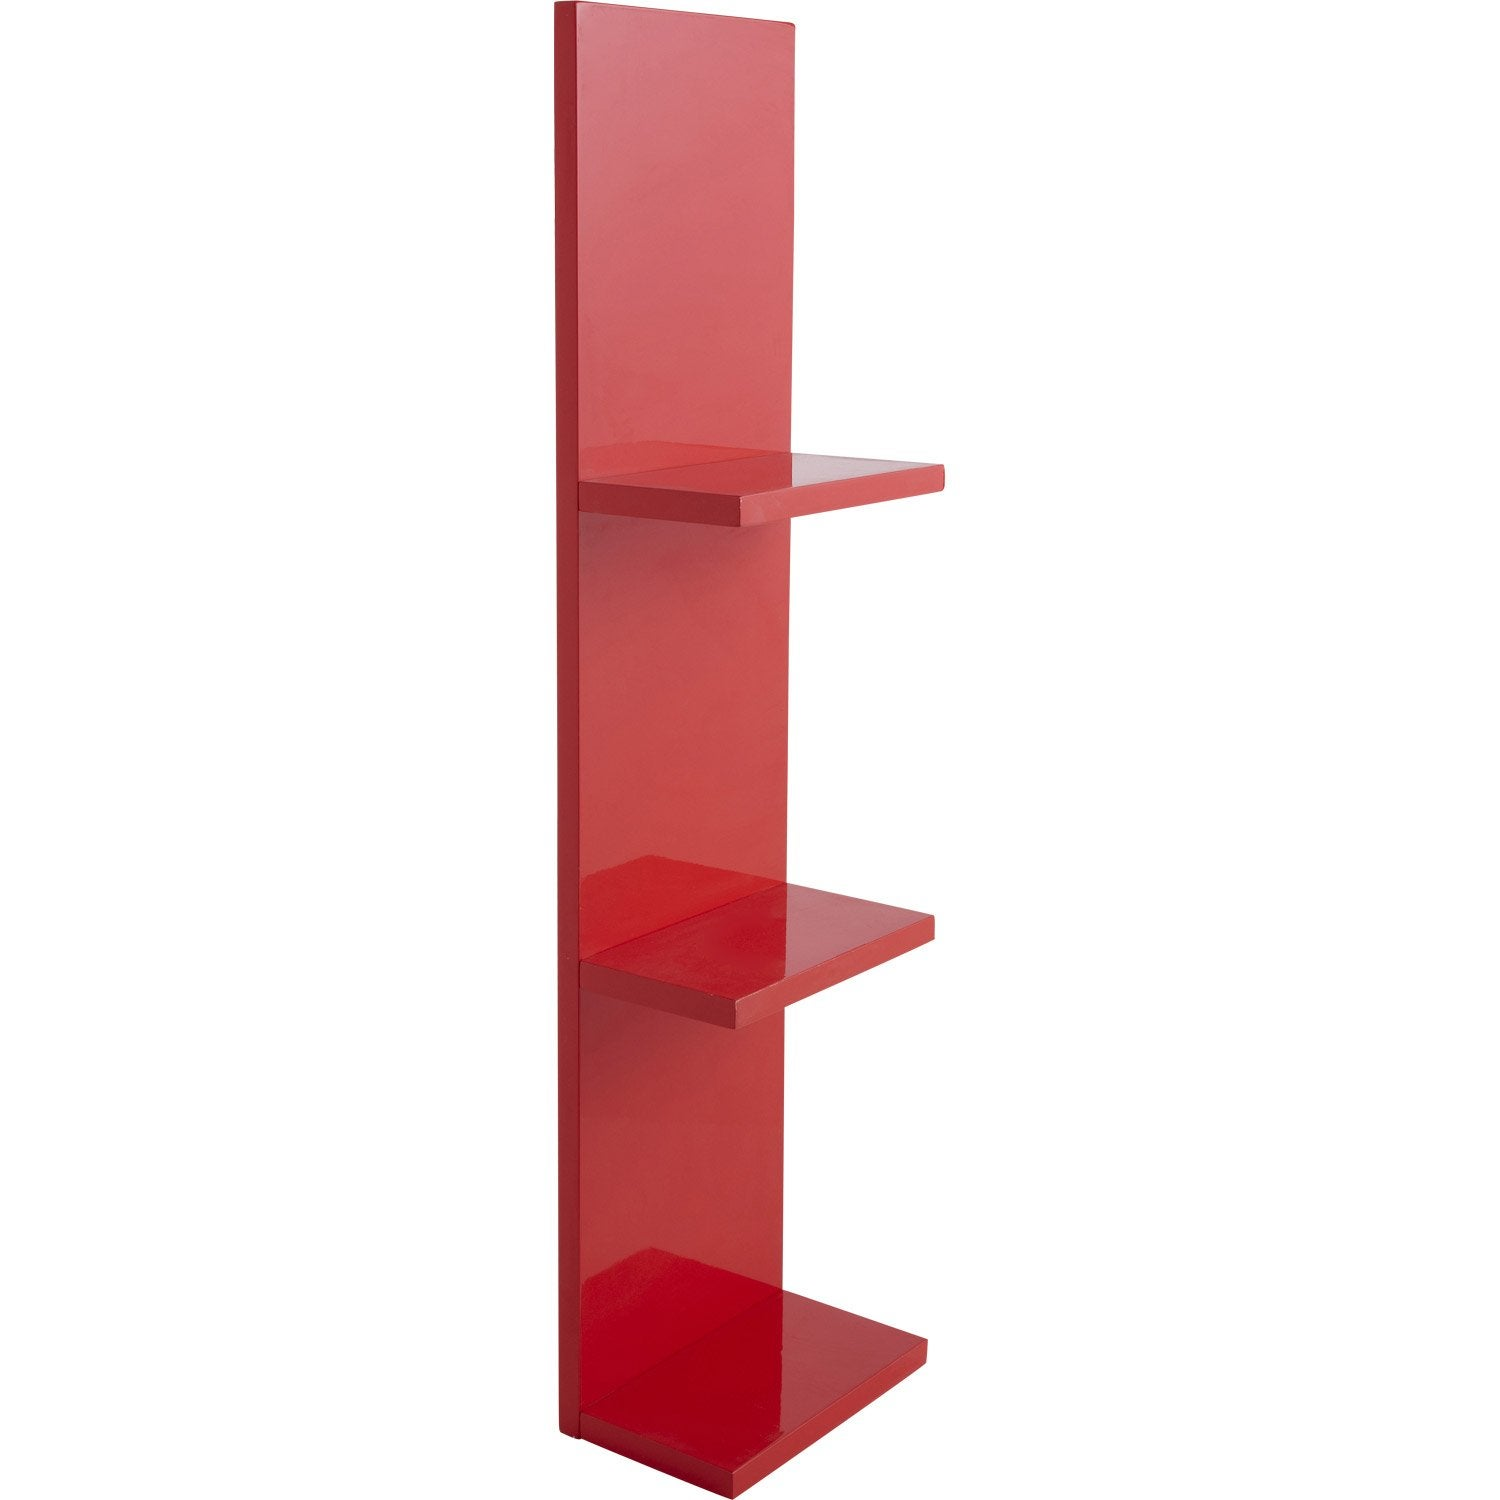 Etag re de wc young rouge rouge n 5 leroy merlin - Leroy merlin etagere ...